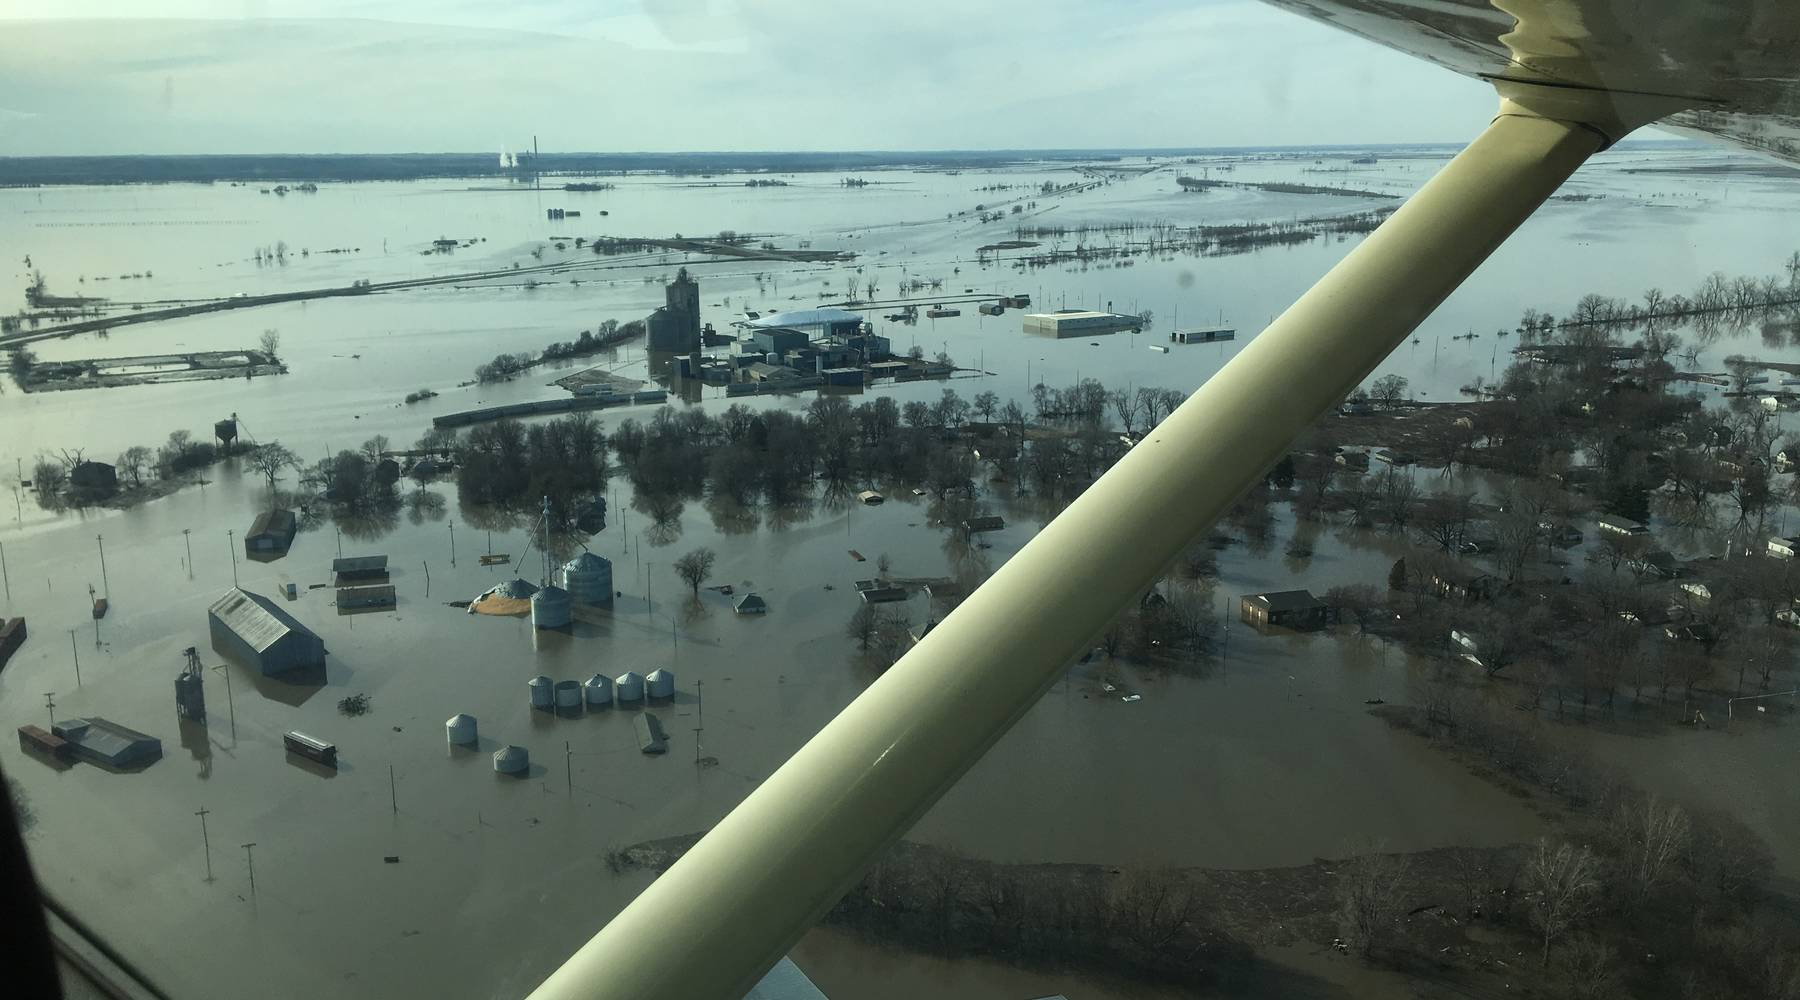 Midwest suffers extensive flooding and damage - Marketplace